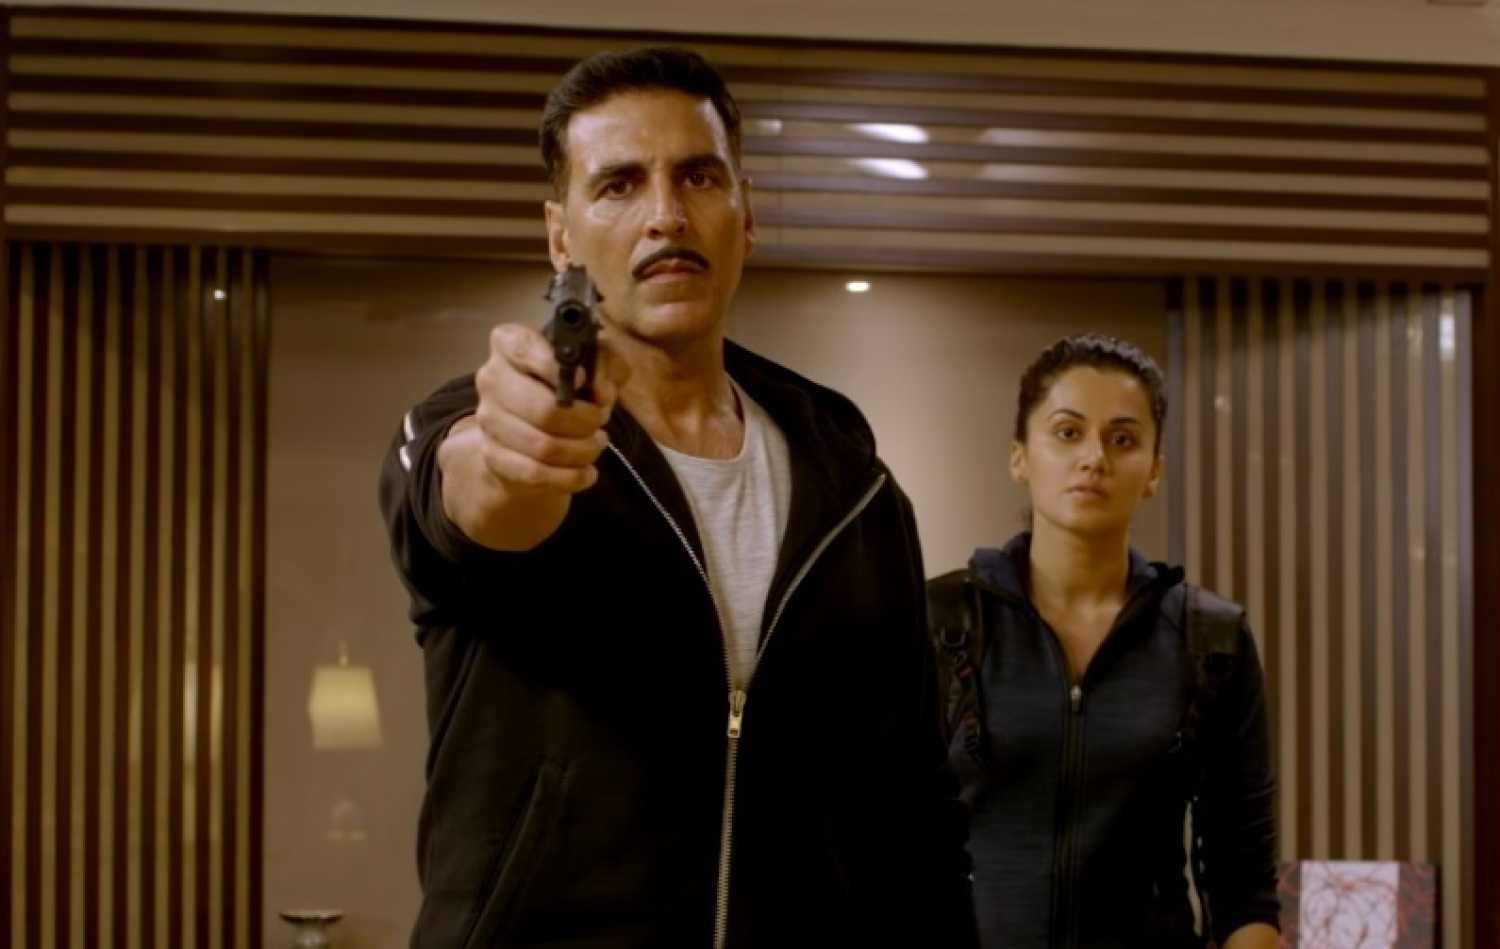 Akshay Kumar and Taapsee Pannu in Naam Shabana.